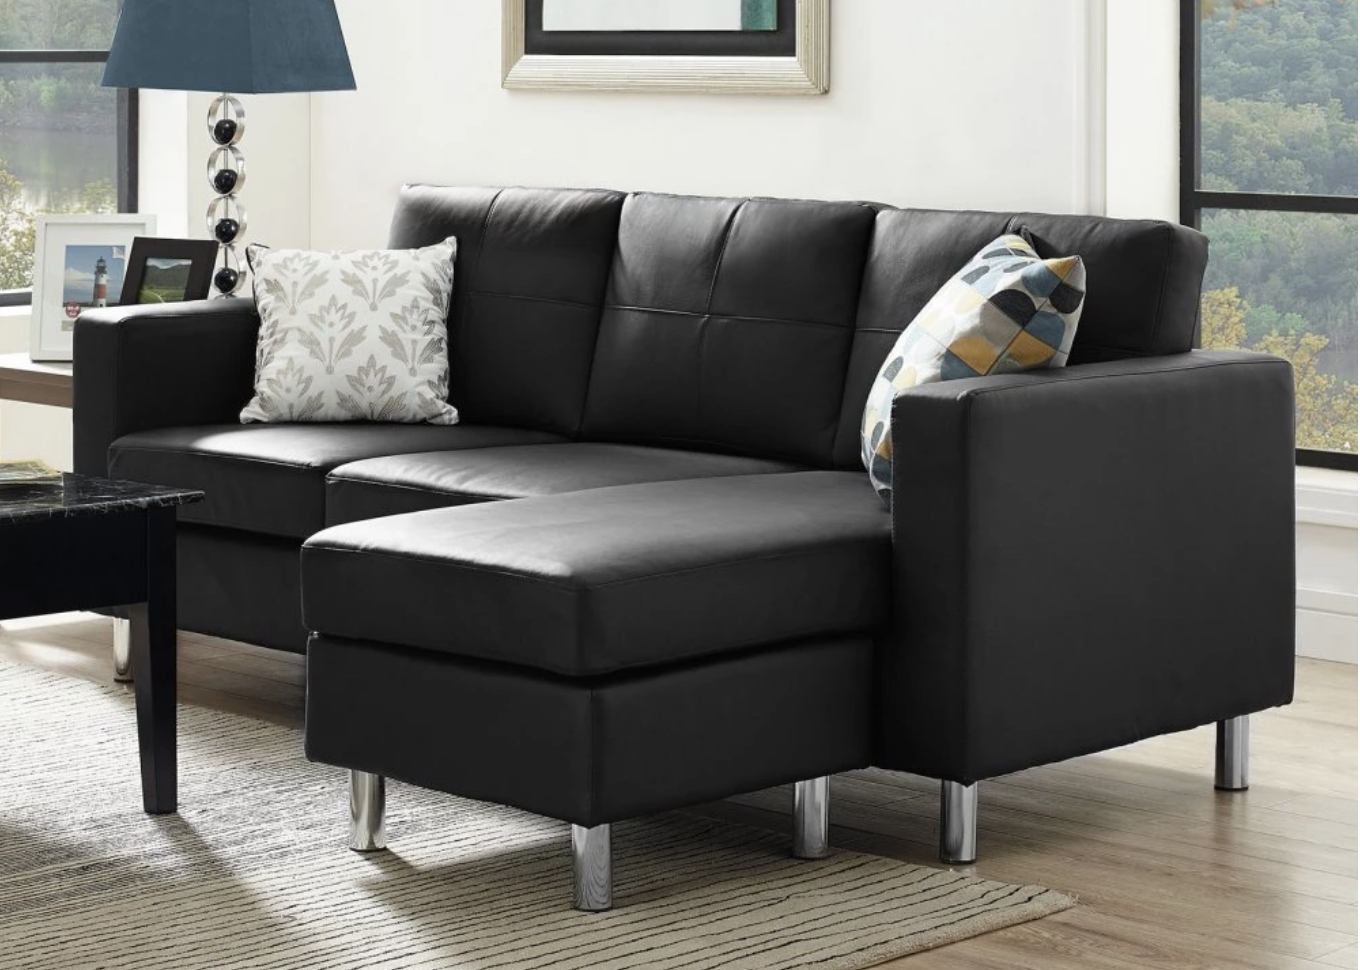 Preferred Sectional Sofas For Small Areas Regarding 75 Modern Sectional Sofas For Small Spaces (2018) (View 9 of 15)